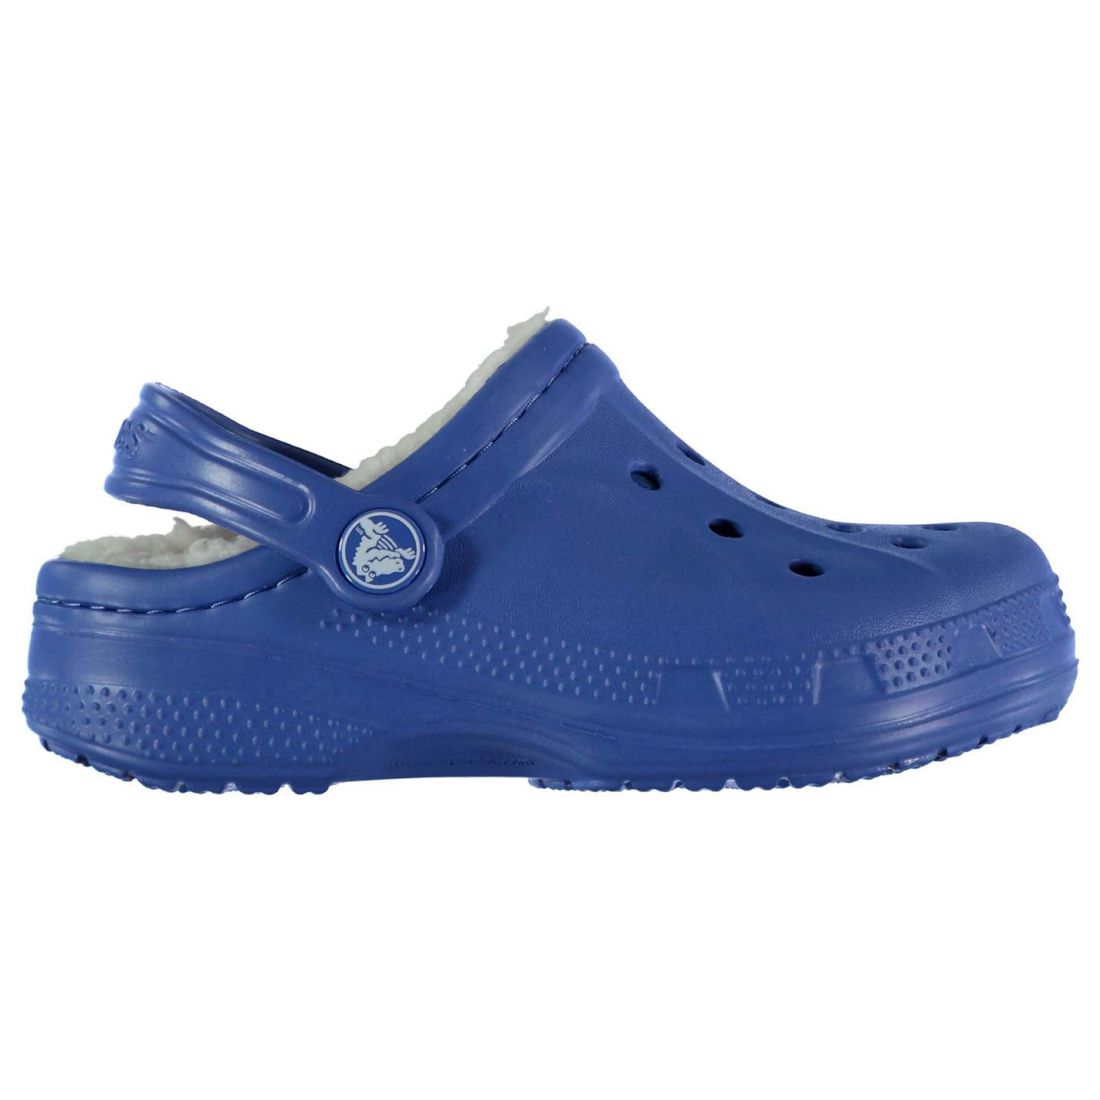 Crocs Boys Ralen Lined Clogs Baby Shoes Everyday Slip On Comfortable ... 99ccb6023